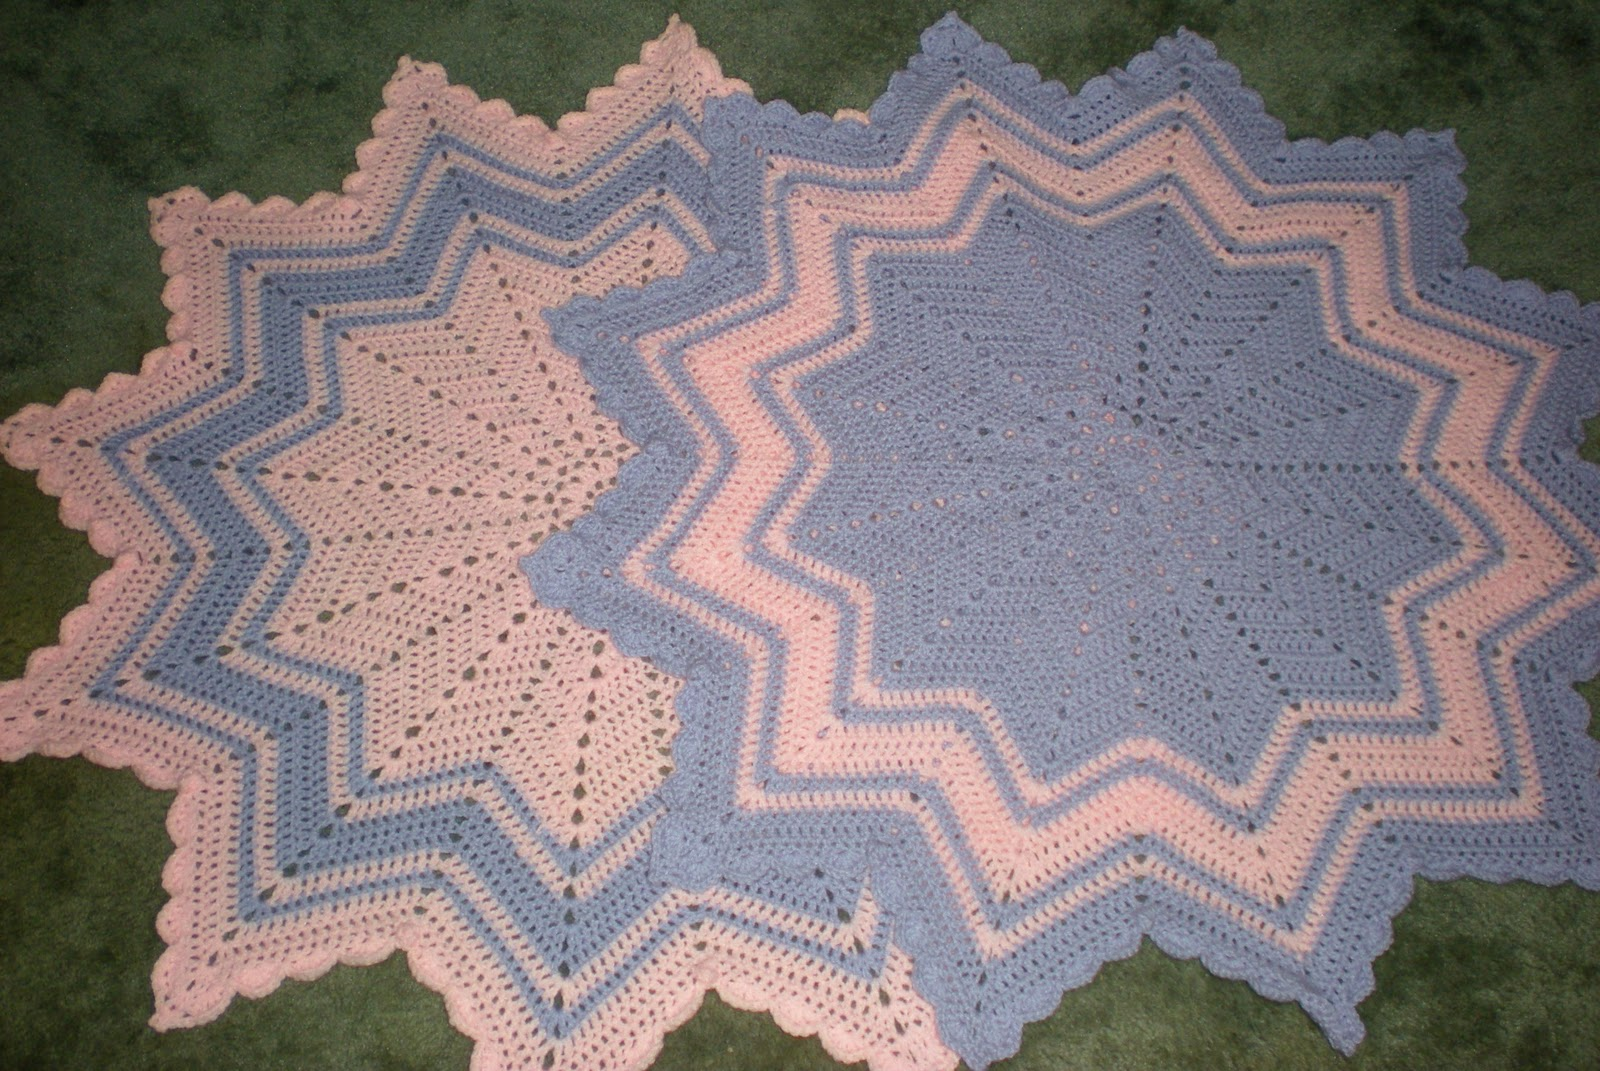 RoseRed Designs: Scallop & Popcorn Edging for 12 Point Round Ripples